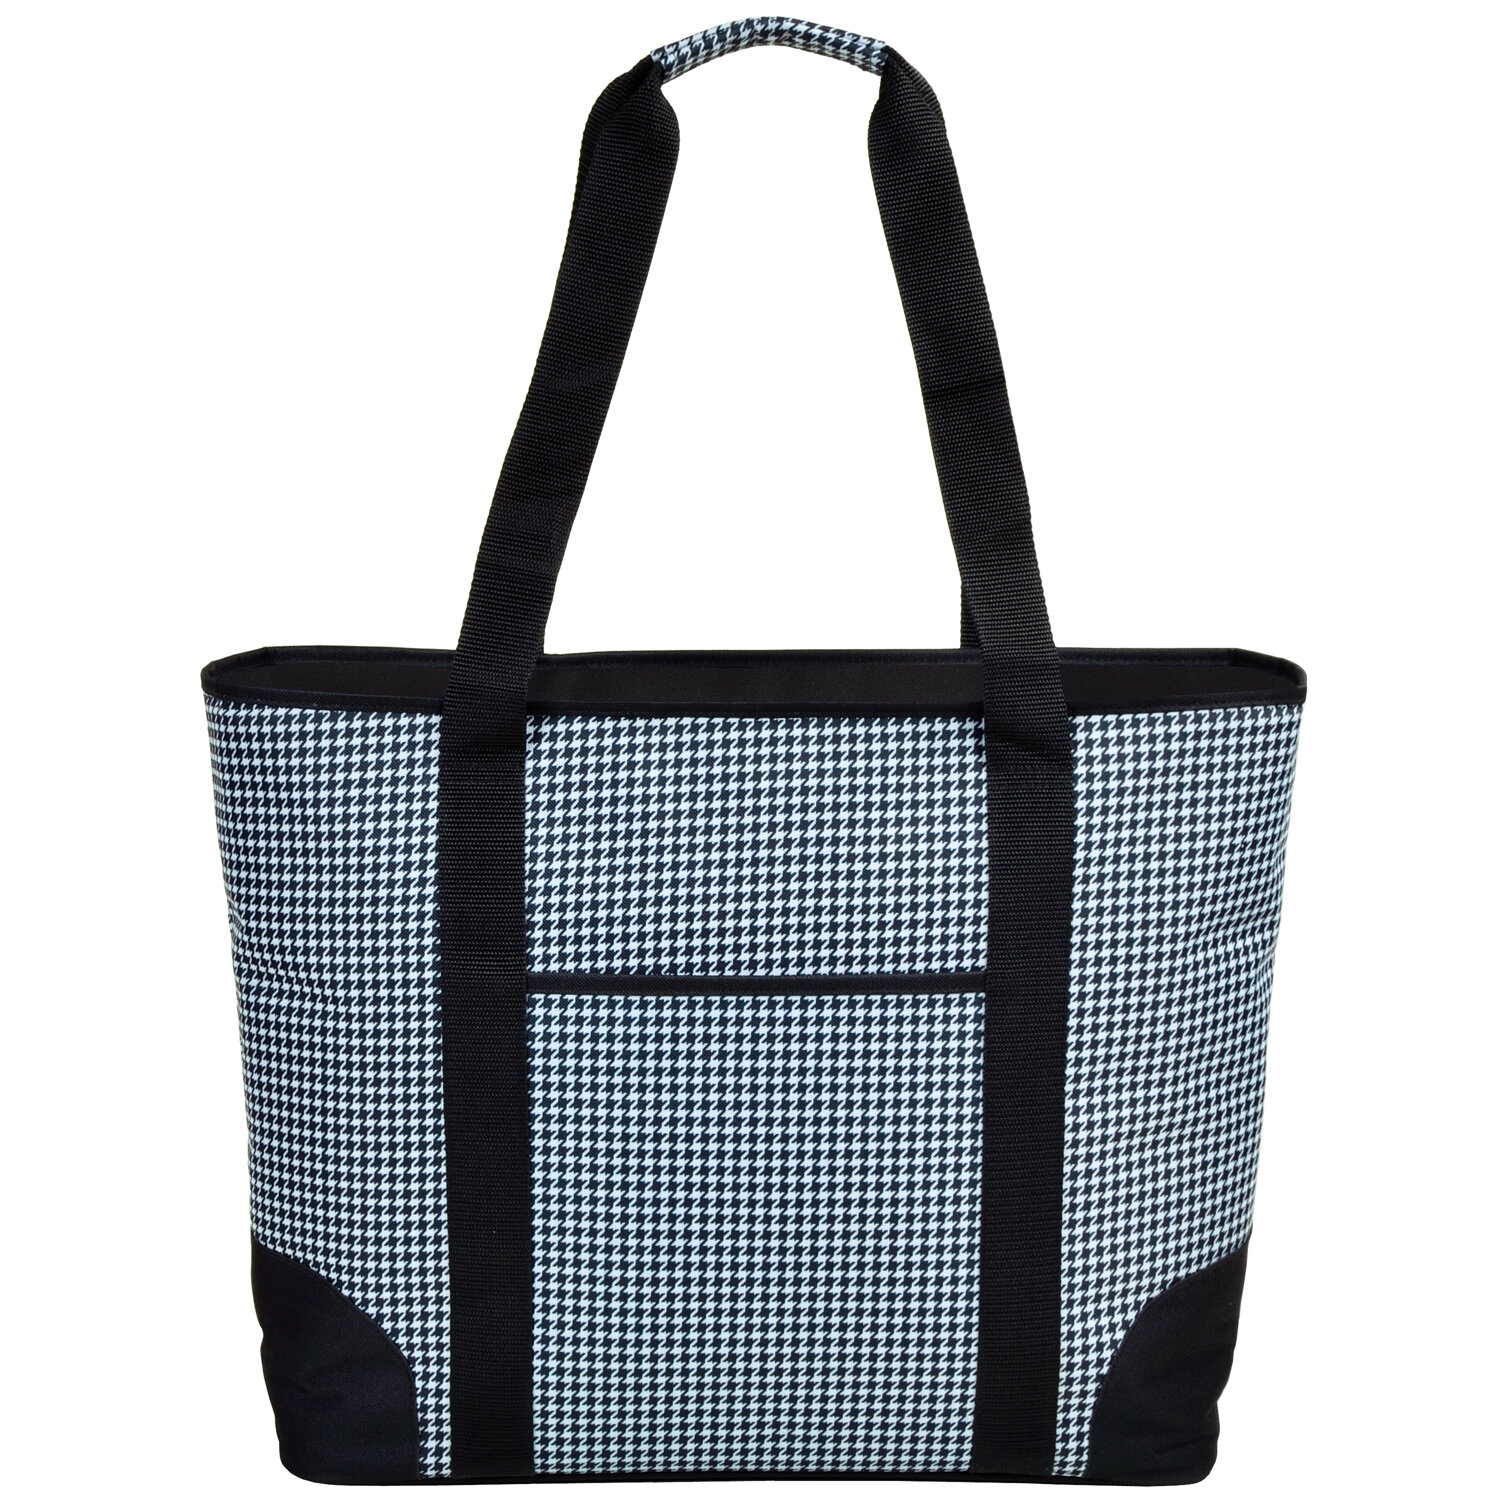 b4186c3abc Large Insulated Tote Picnic Cooler